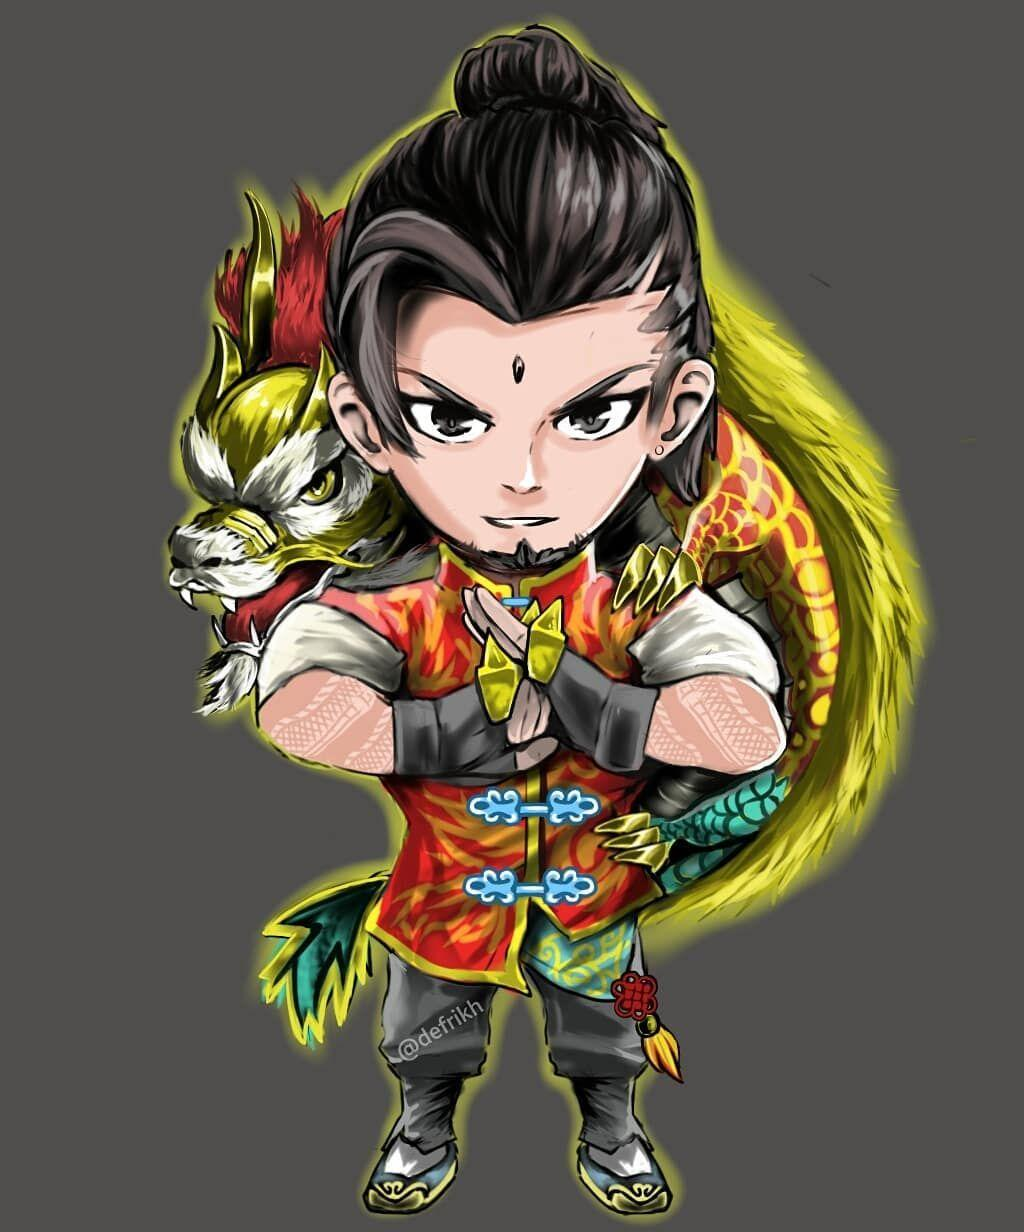 Wallpaper Chou Dragon Boy Fans Arts Full HD for Android and iOS